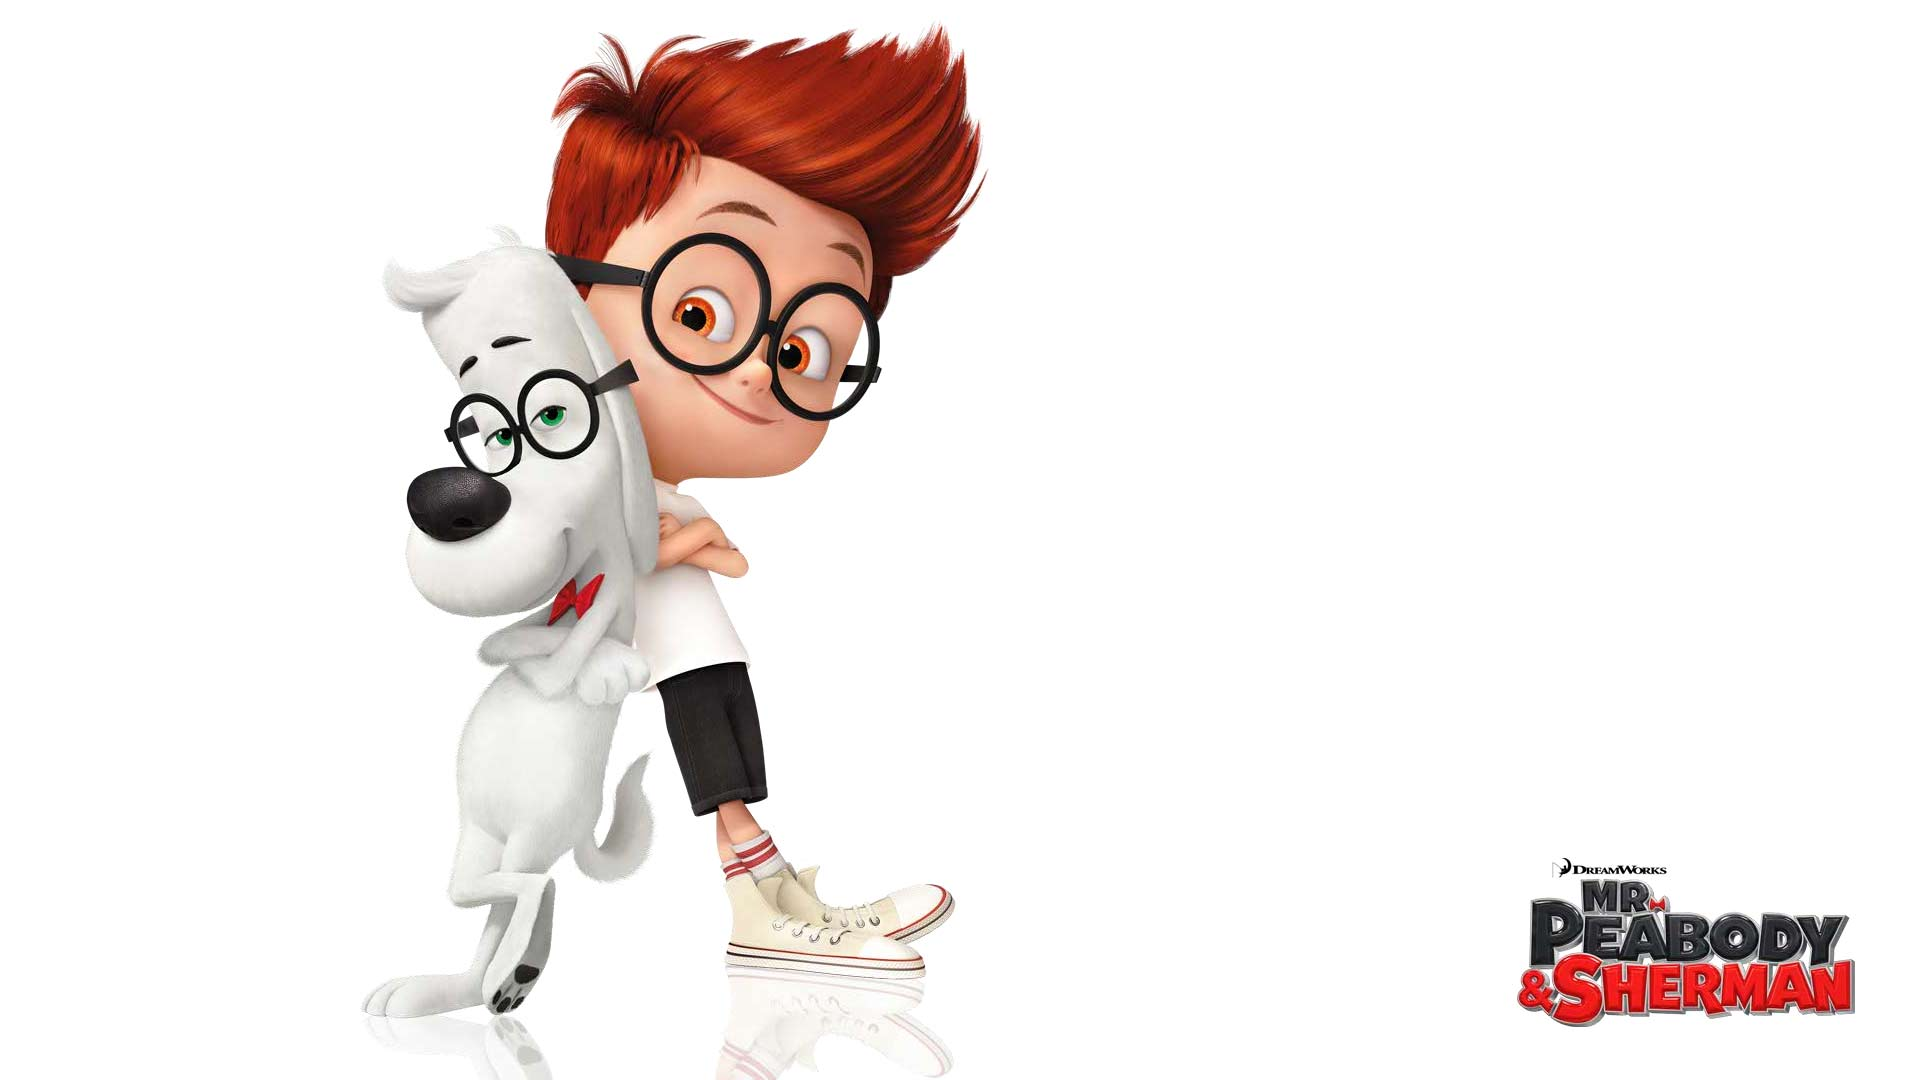 High Resolution Wallpaper | Mr. Peabody & Sherman 1920x1080 px